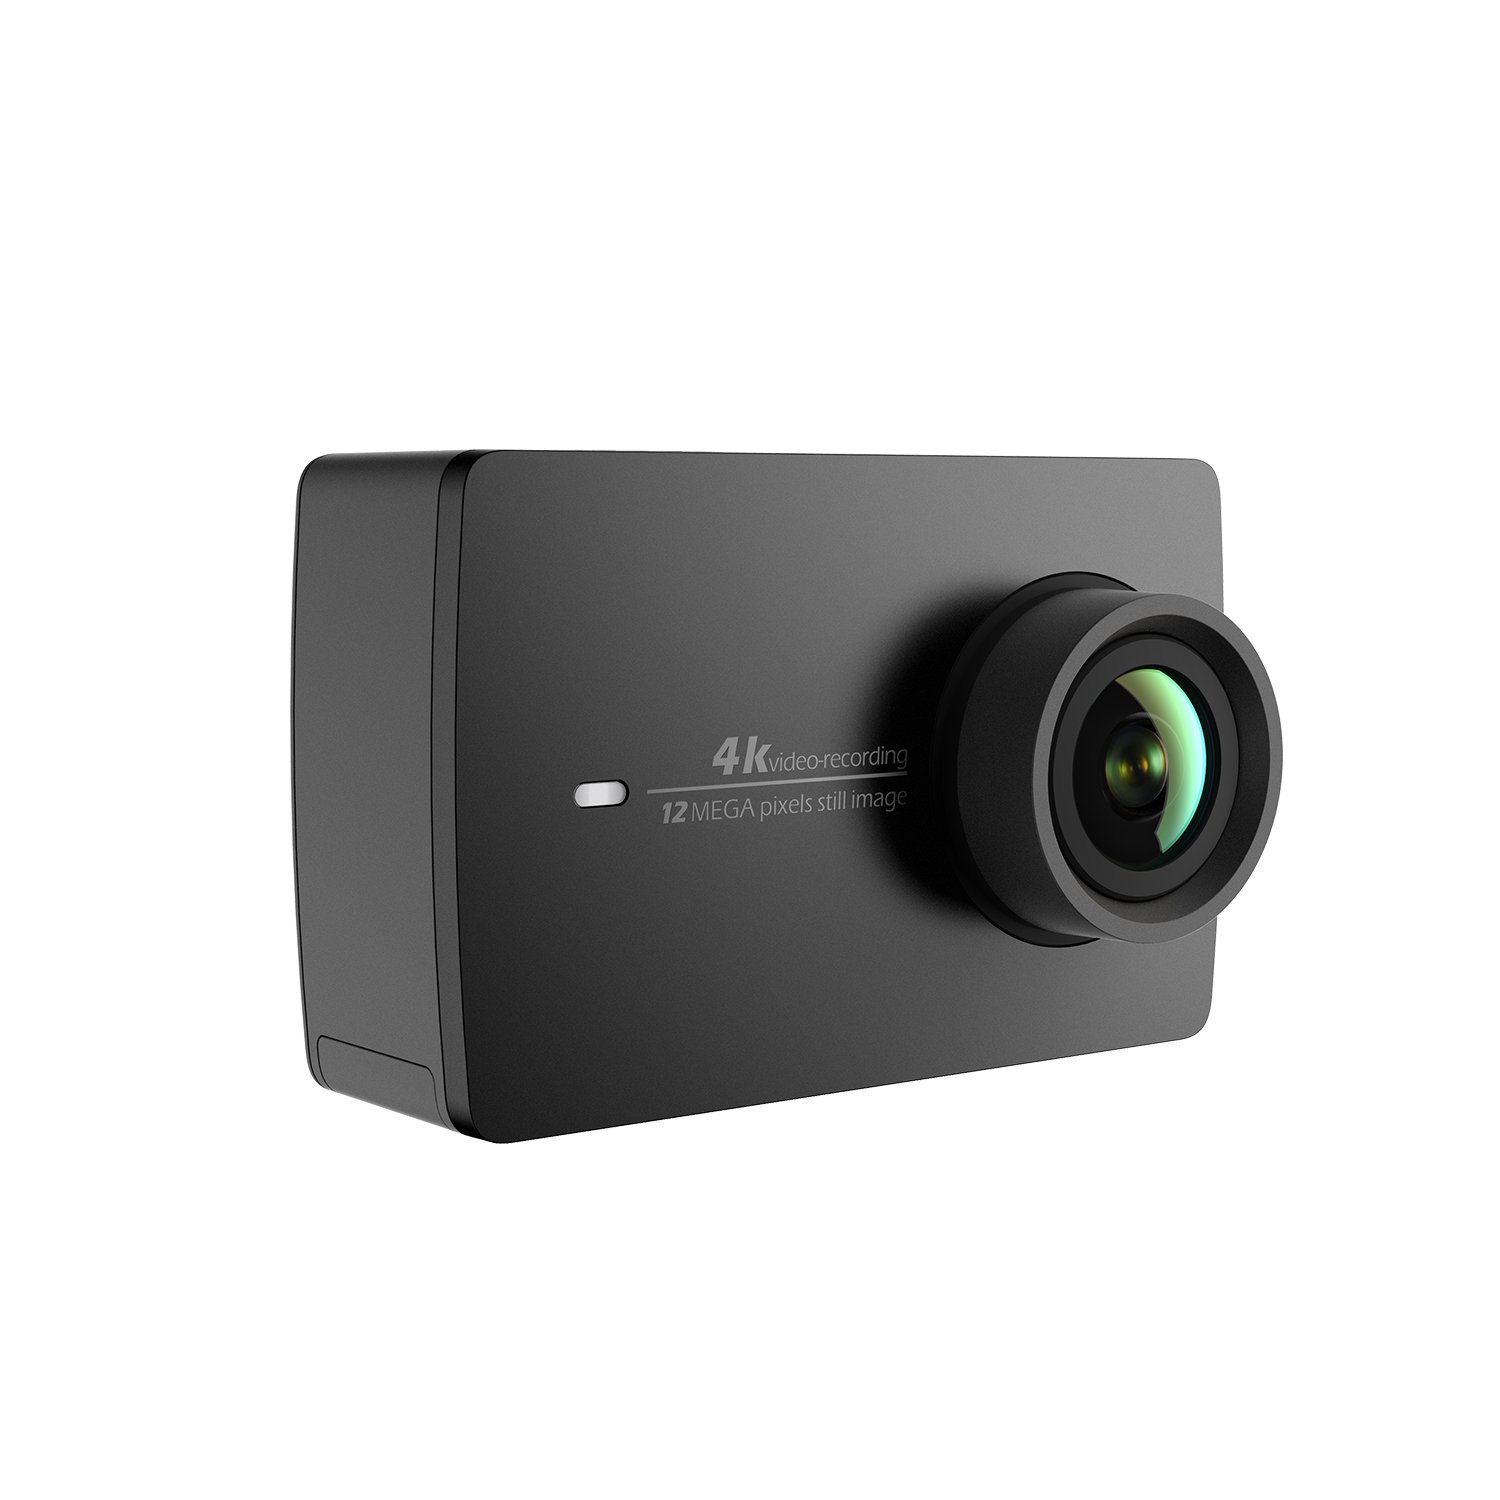 YI 4k Action Camera Black Friday Deal 2019